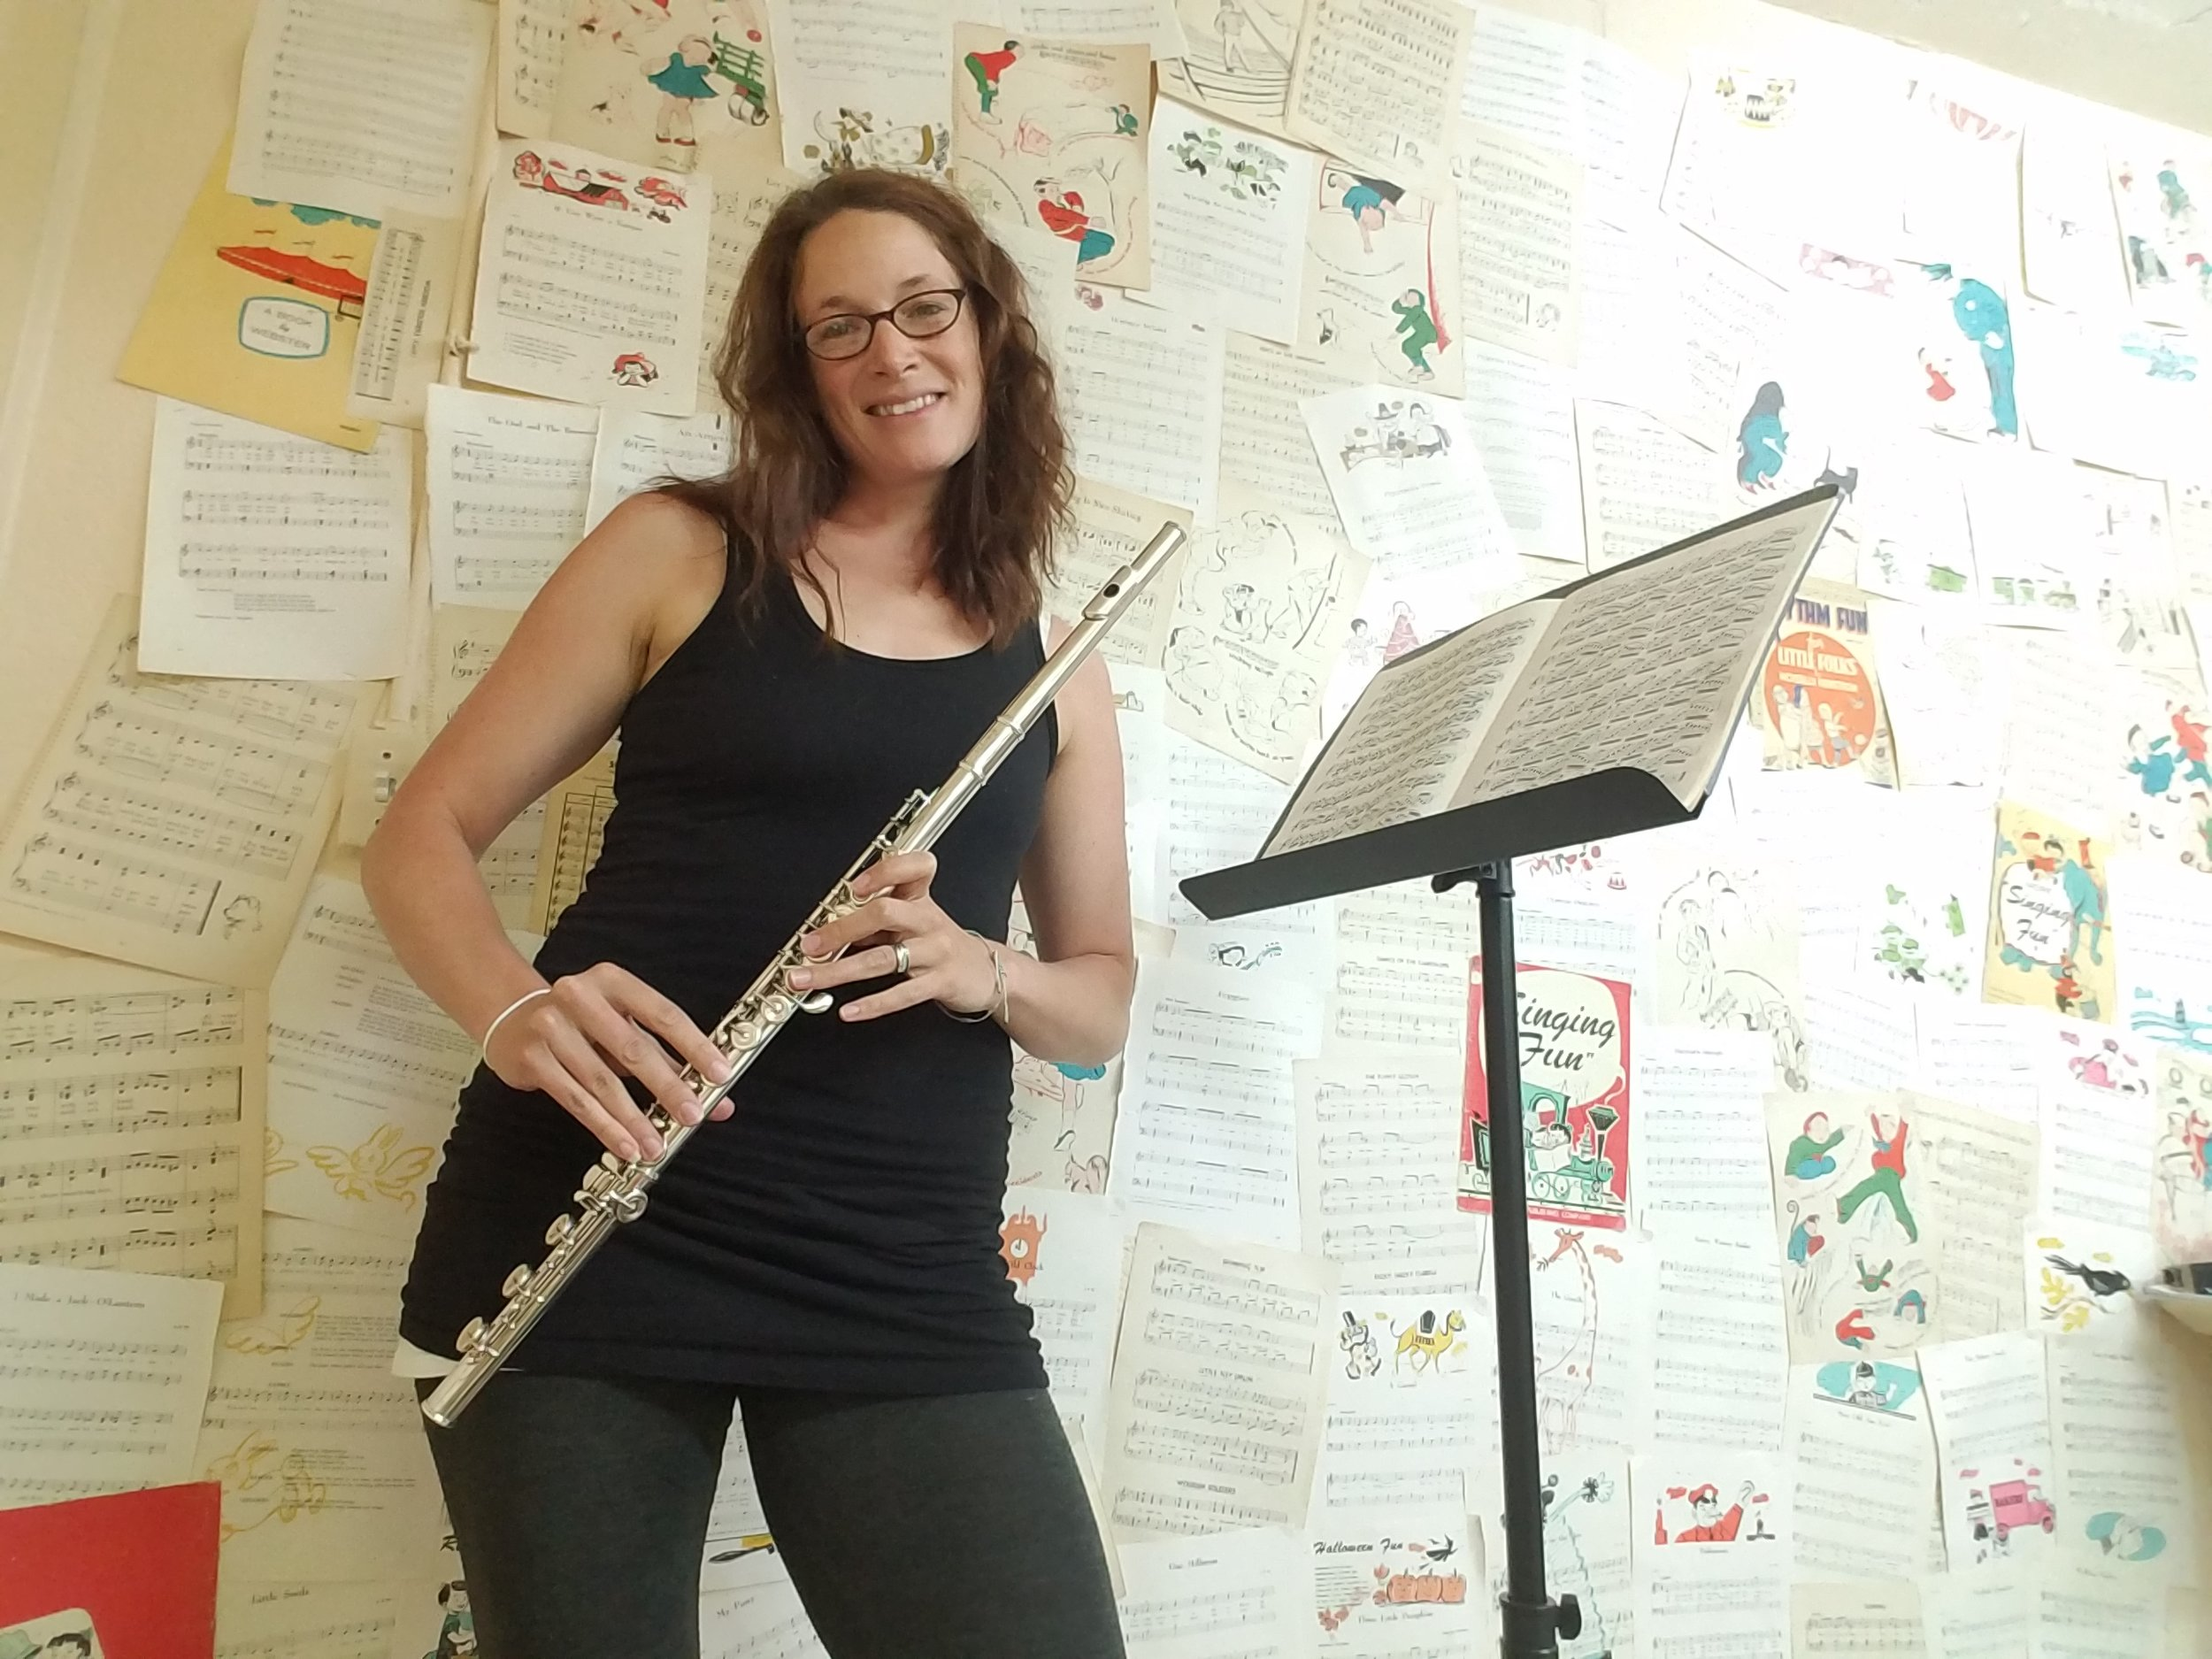 Flute Lessons - From teaching beginning to advanced, Sarah has extensive experiencing in helping students with their tone, breath control, technique and musicality. Students will be taken through the appropriate repertoire, depending on their experience, including being challenged and given ample opportunities to use their musical knowledge through improvisation and theory.Email Sarah at info@songswithsarah.com